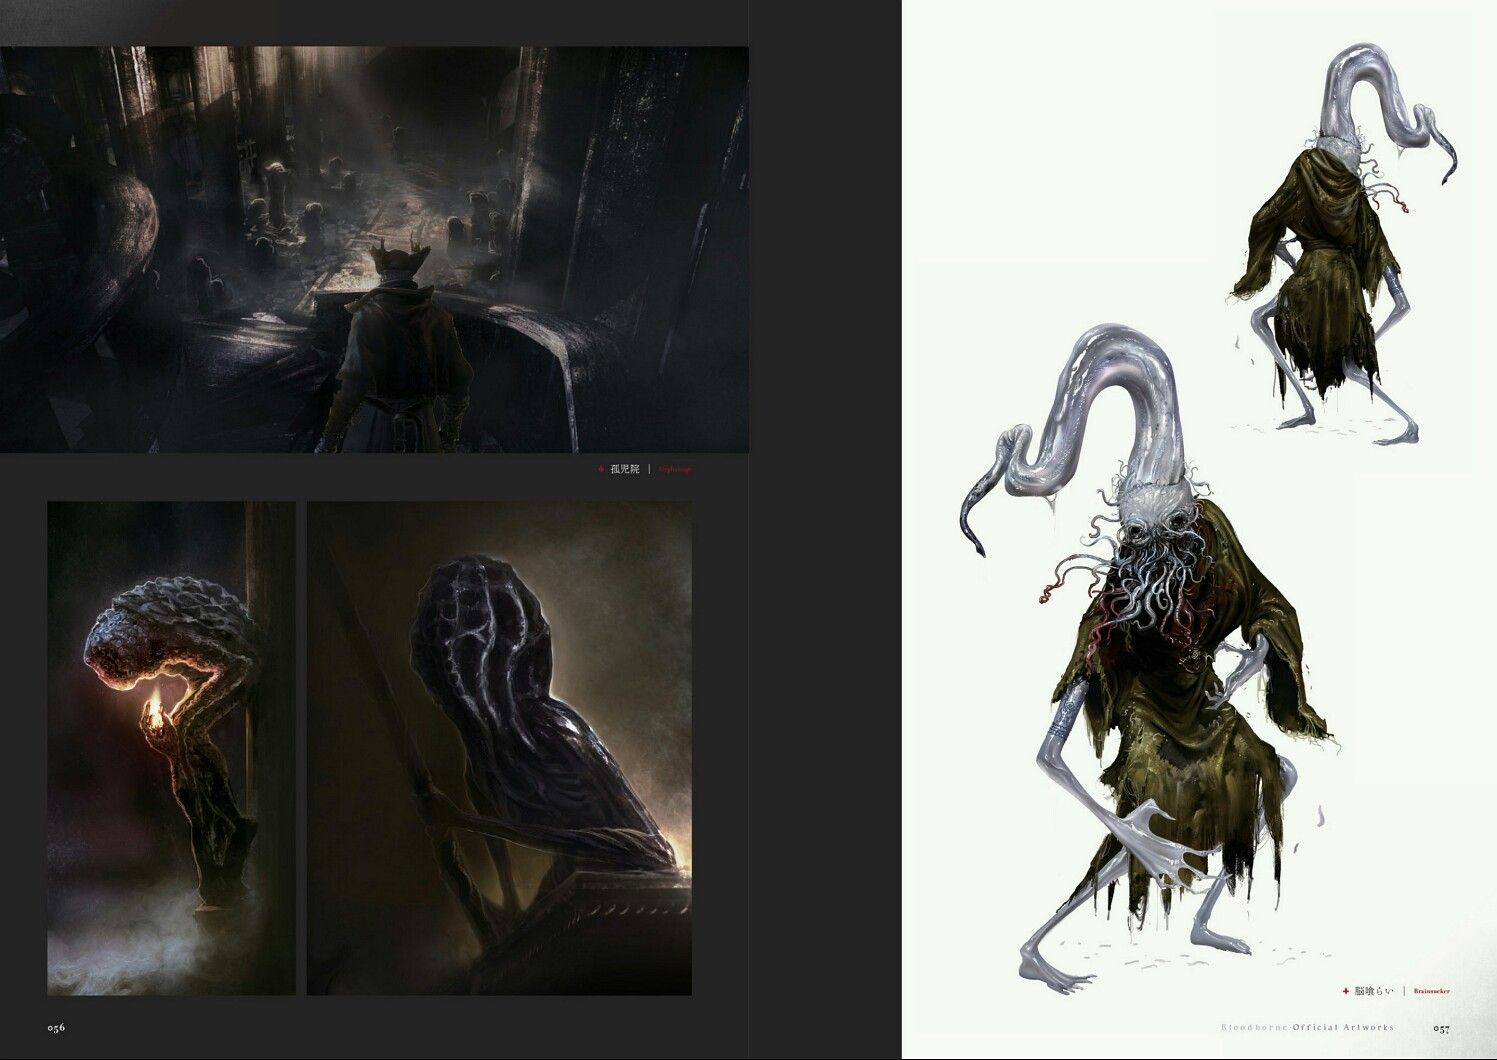 Artsy Fartsy Dark Souls Ii Concept Art: Orphanage & Brain Sucker Concept